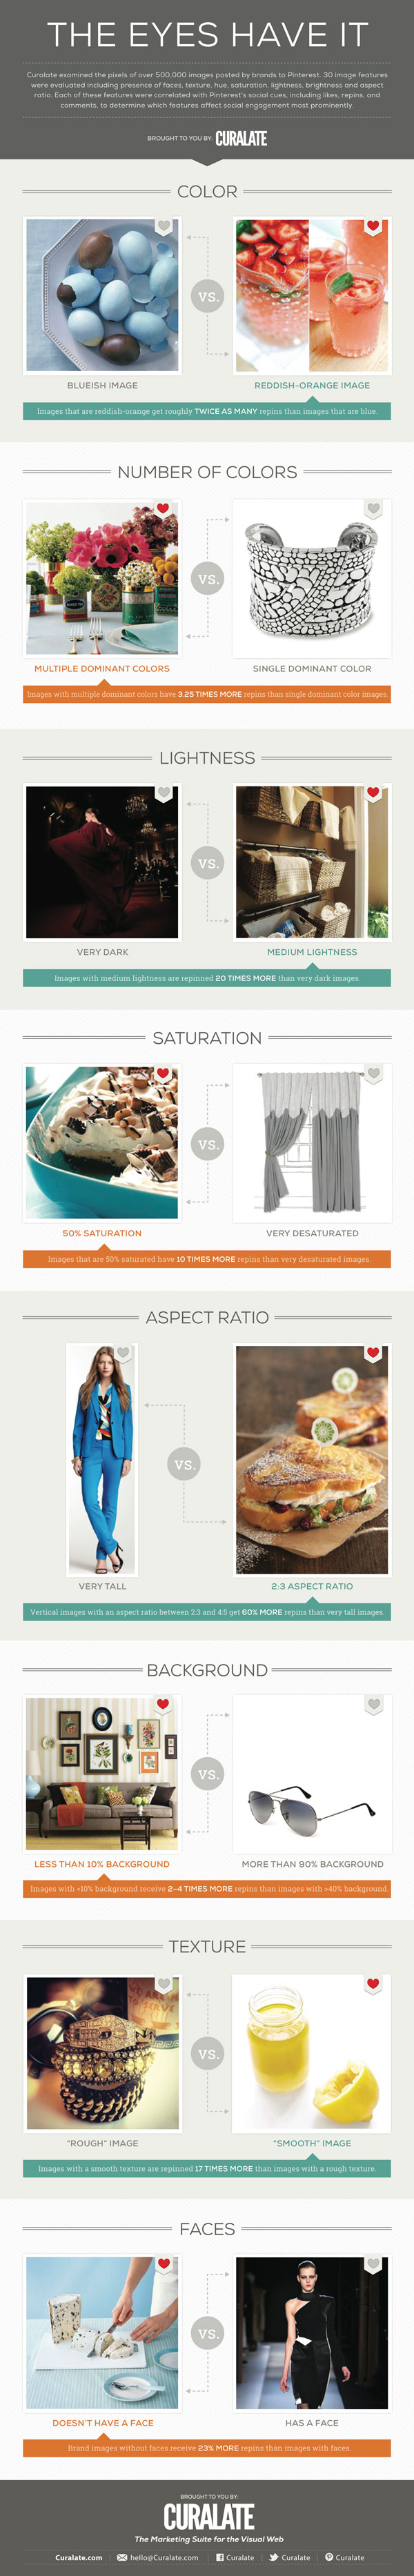 Pinterest: What types of images perform better?